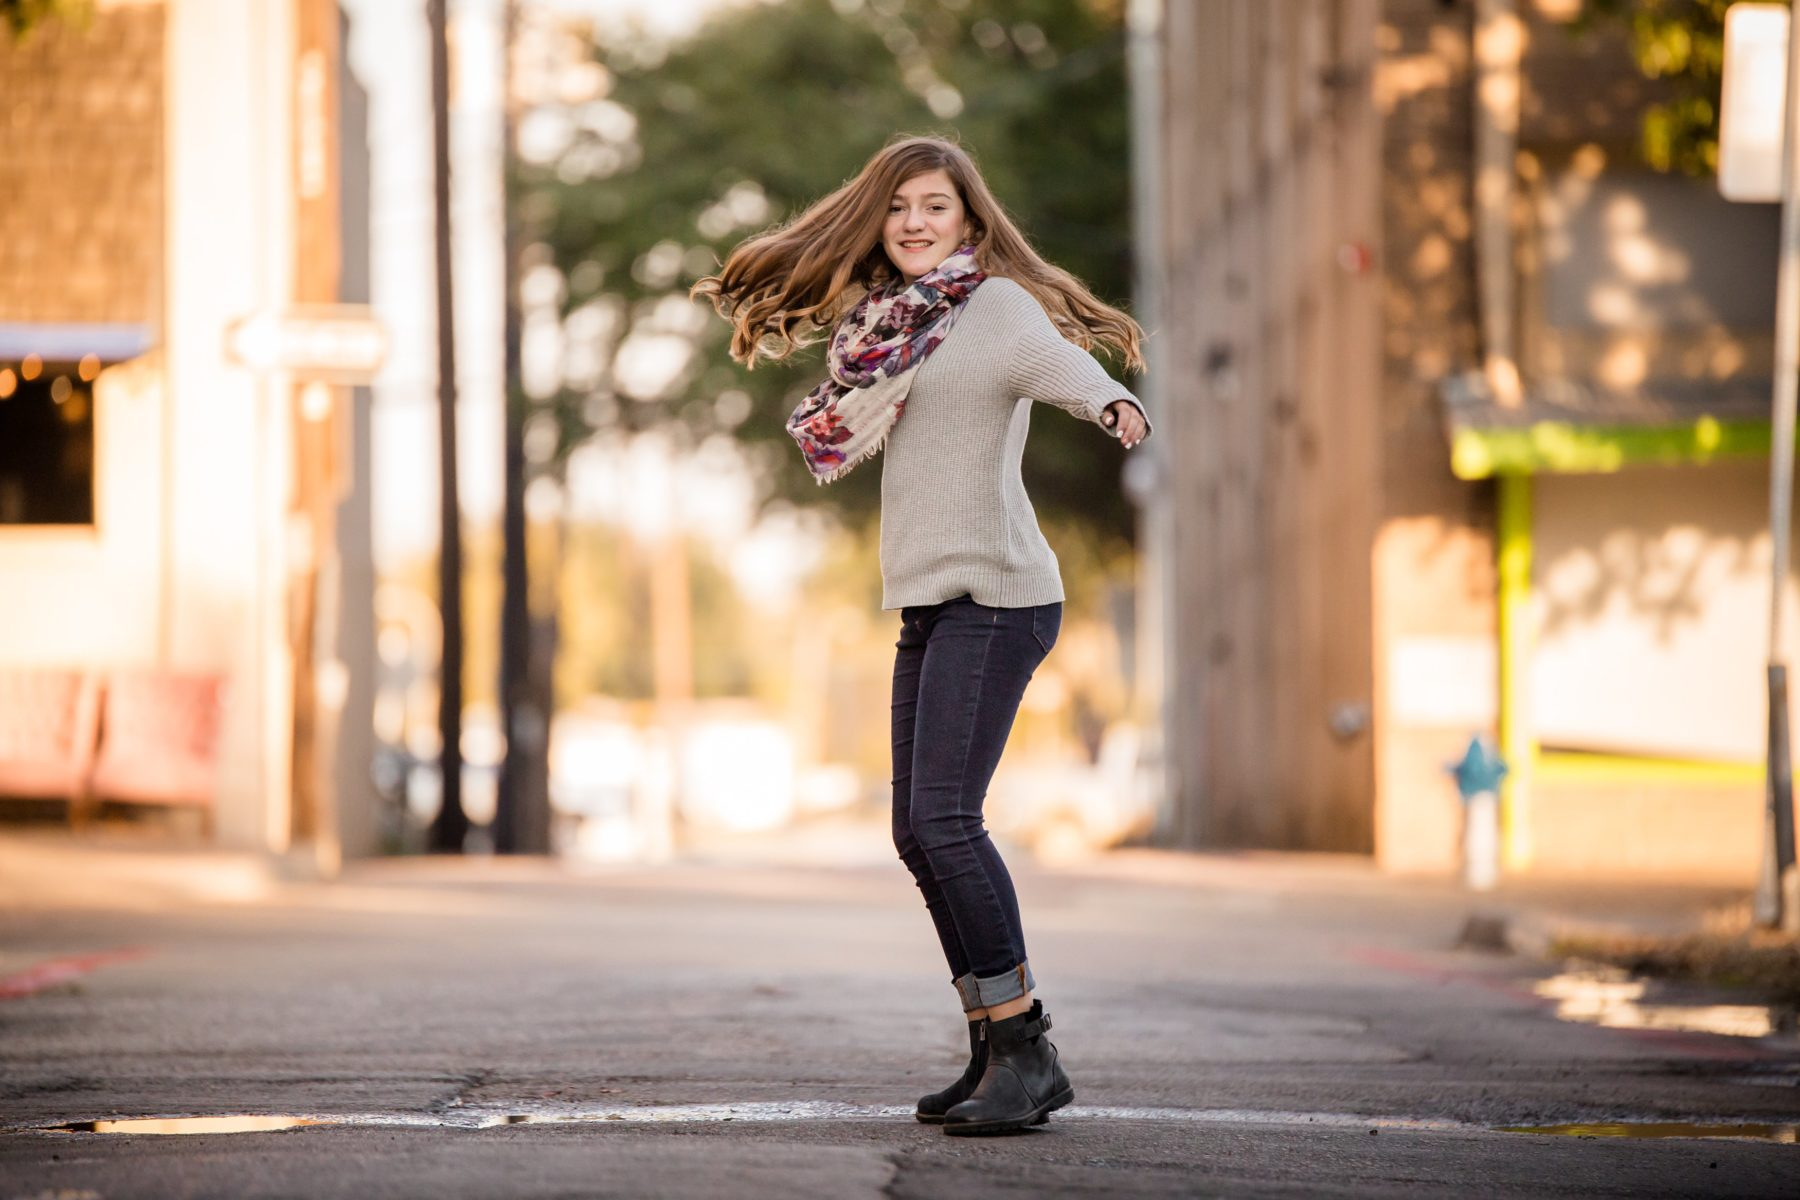 Shelly Niehaus Photography| Dallas Senior Photographer| Senior Girl Downtown McKinney